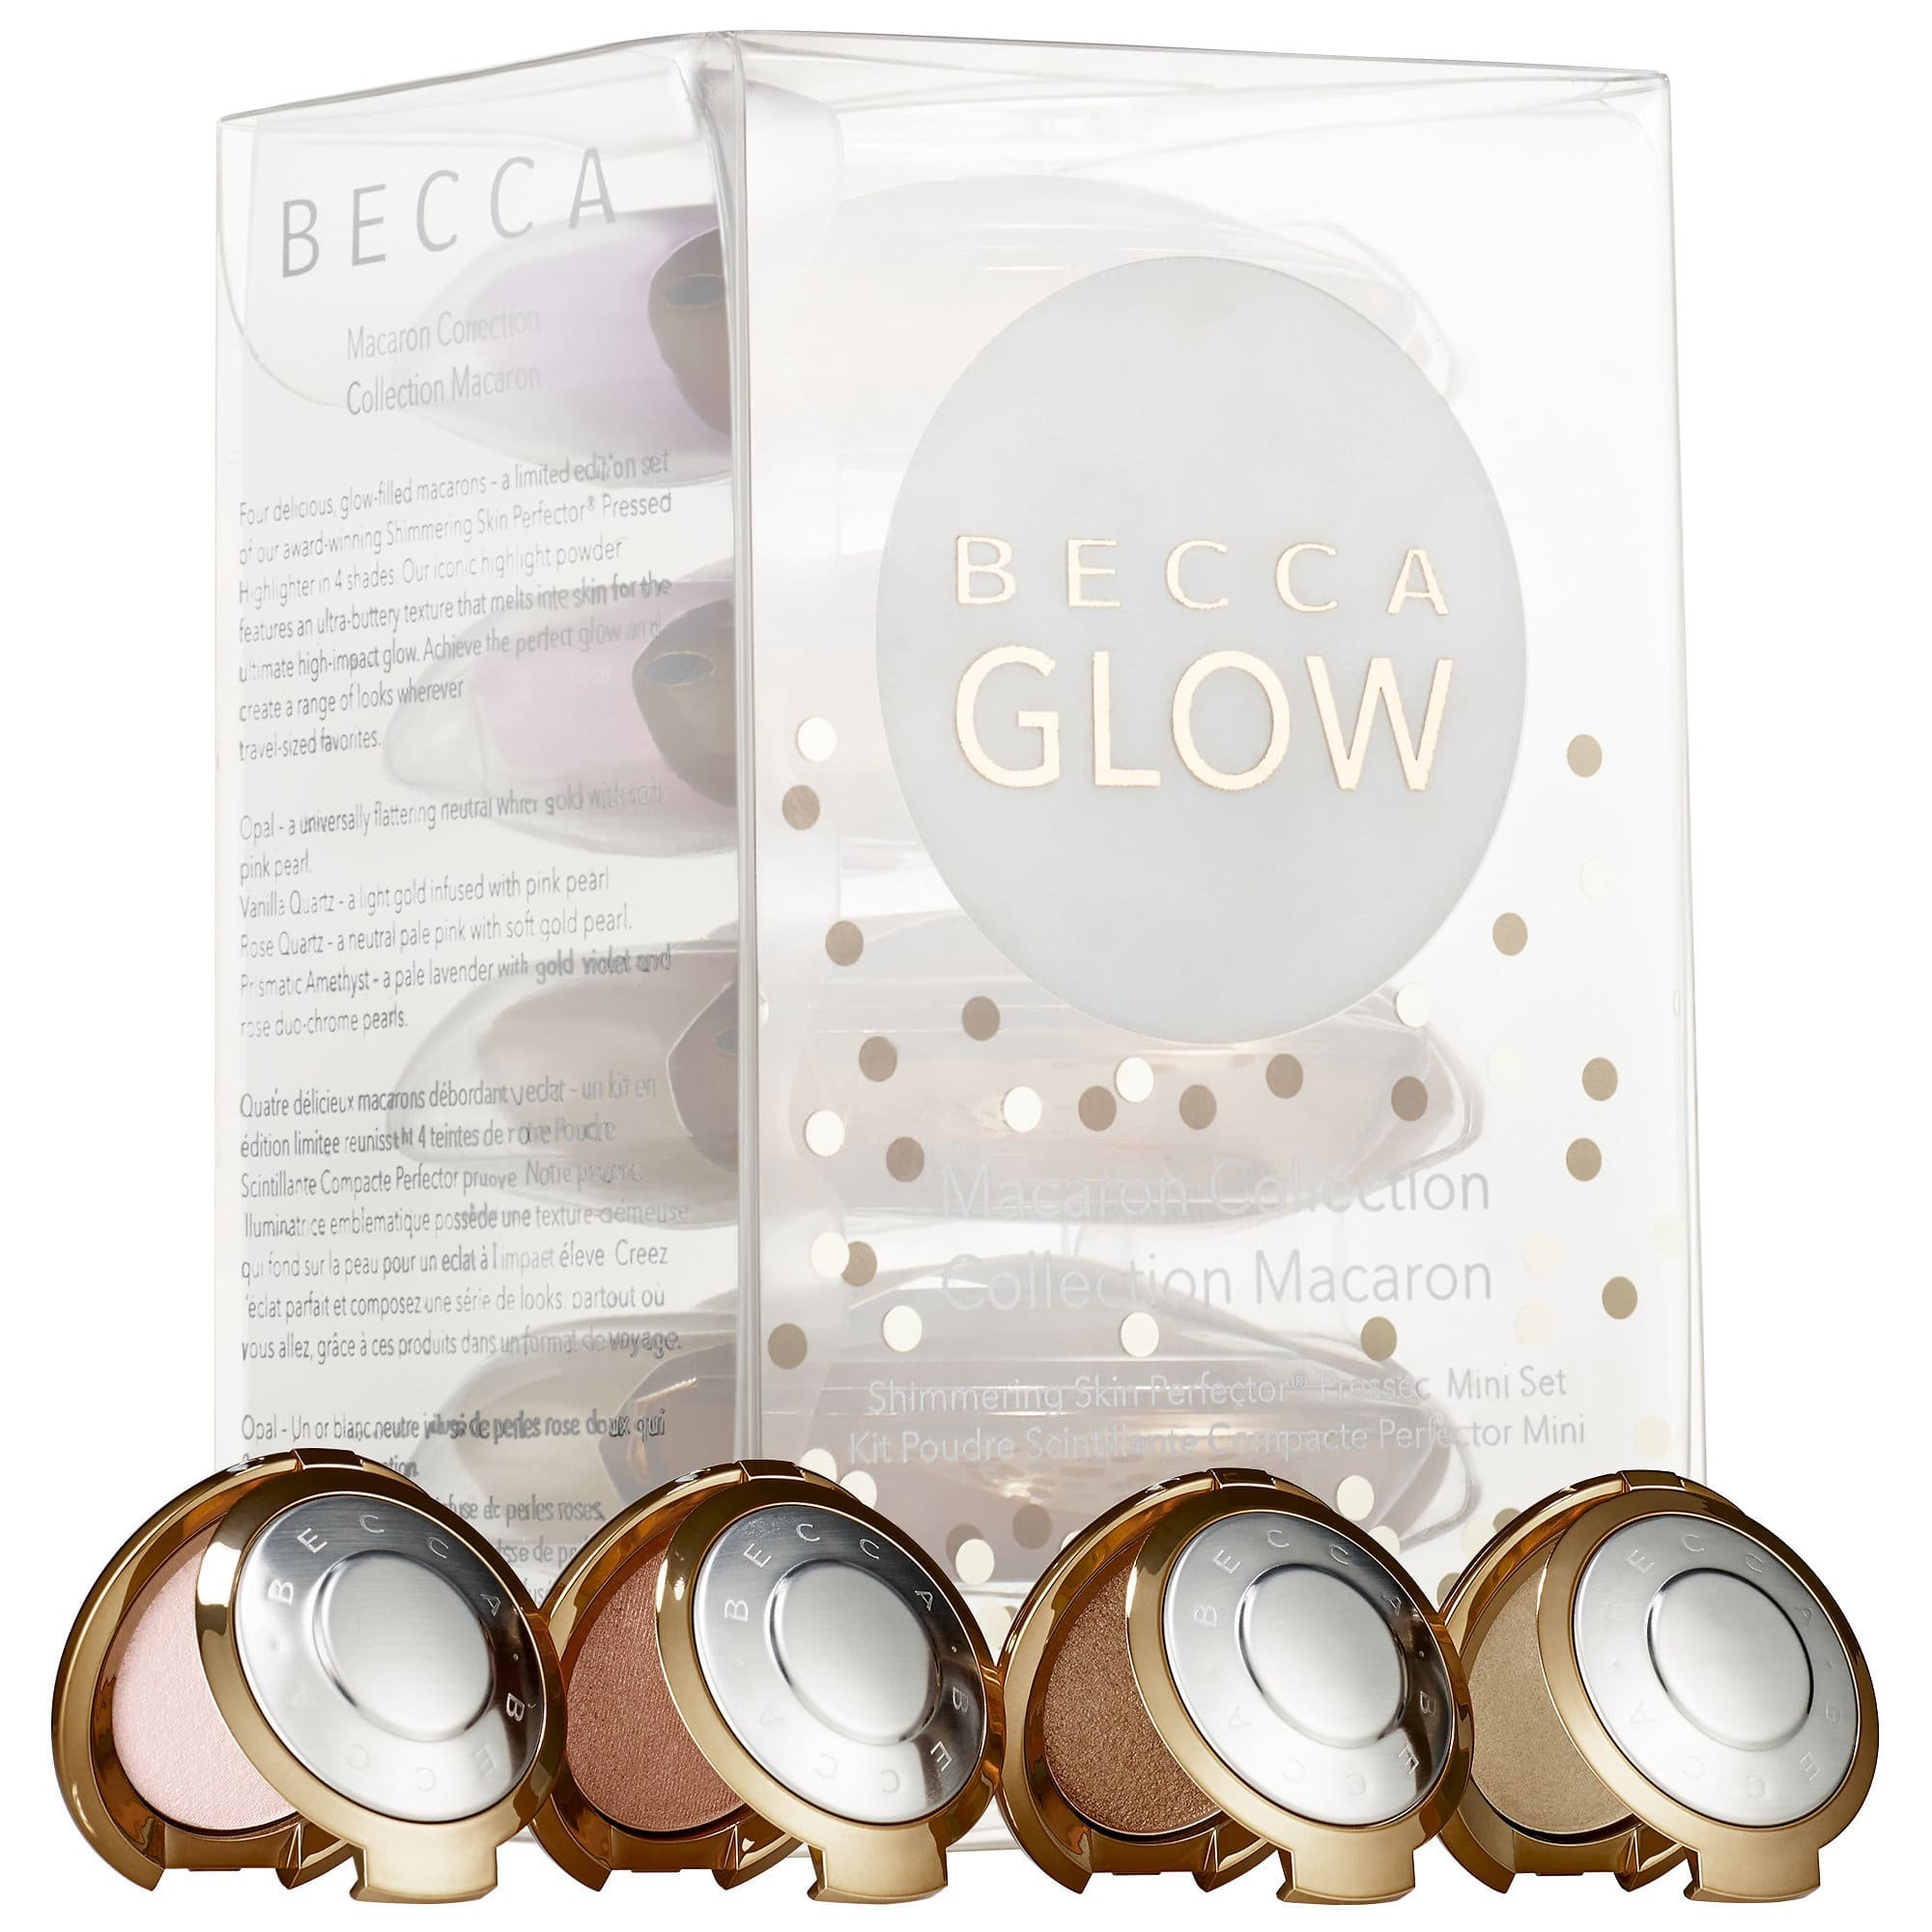 BECCA Shimmering Skin Perfector Pressed Highlighter Mini Macaron Set